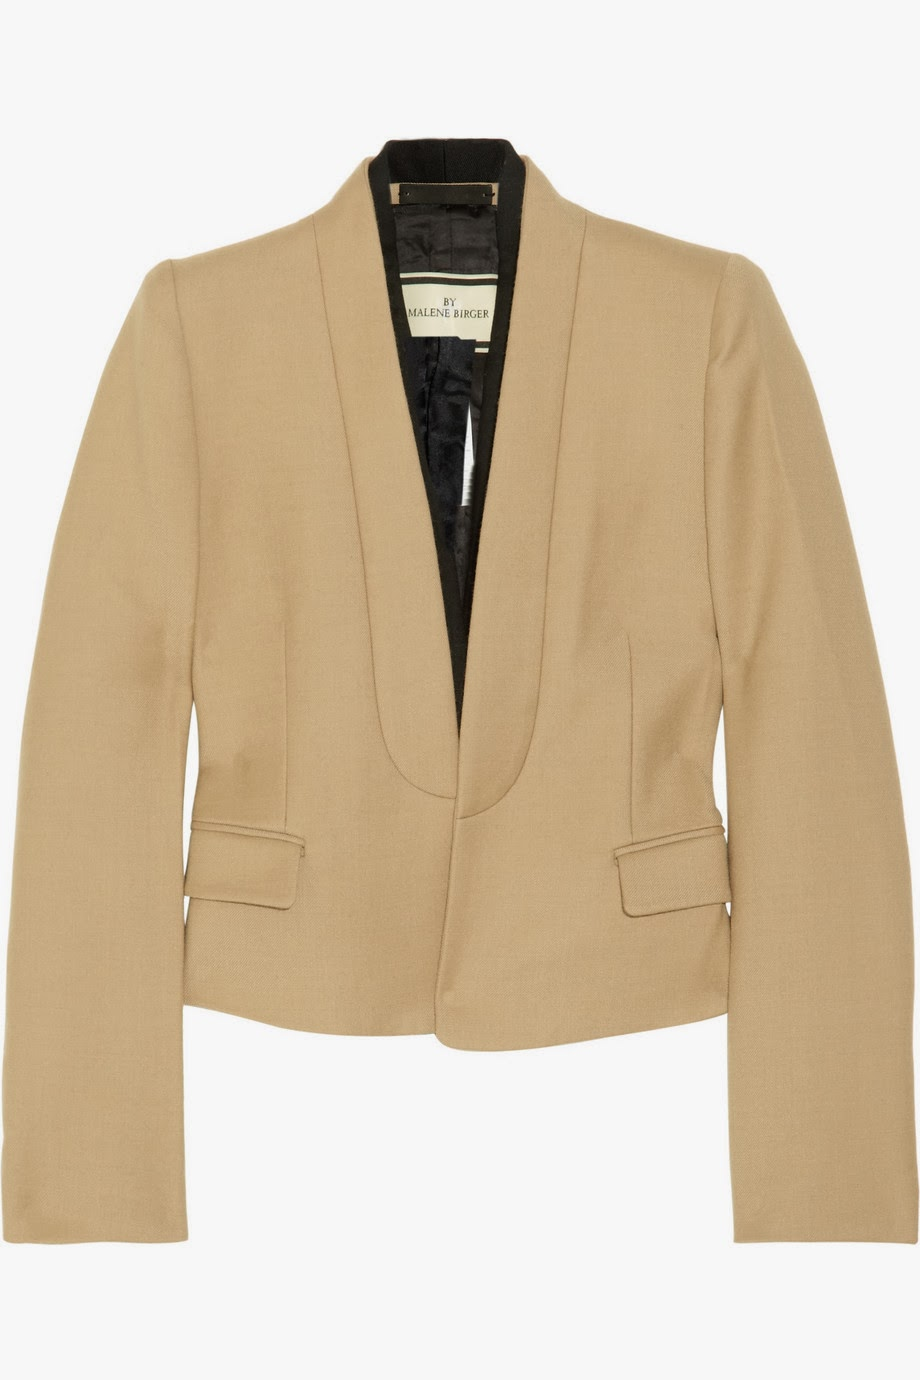 Gacio cropped crepe jacket  $745